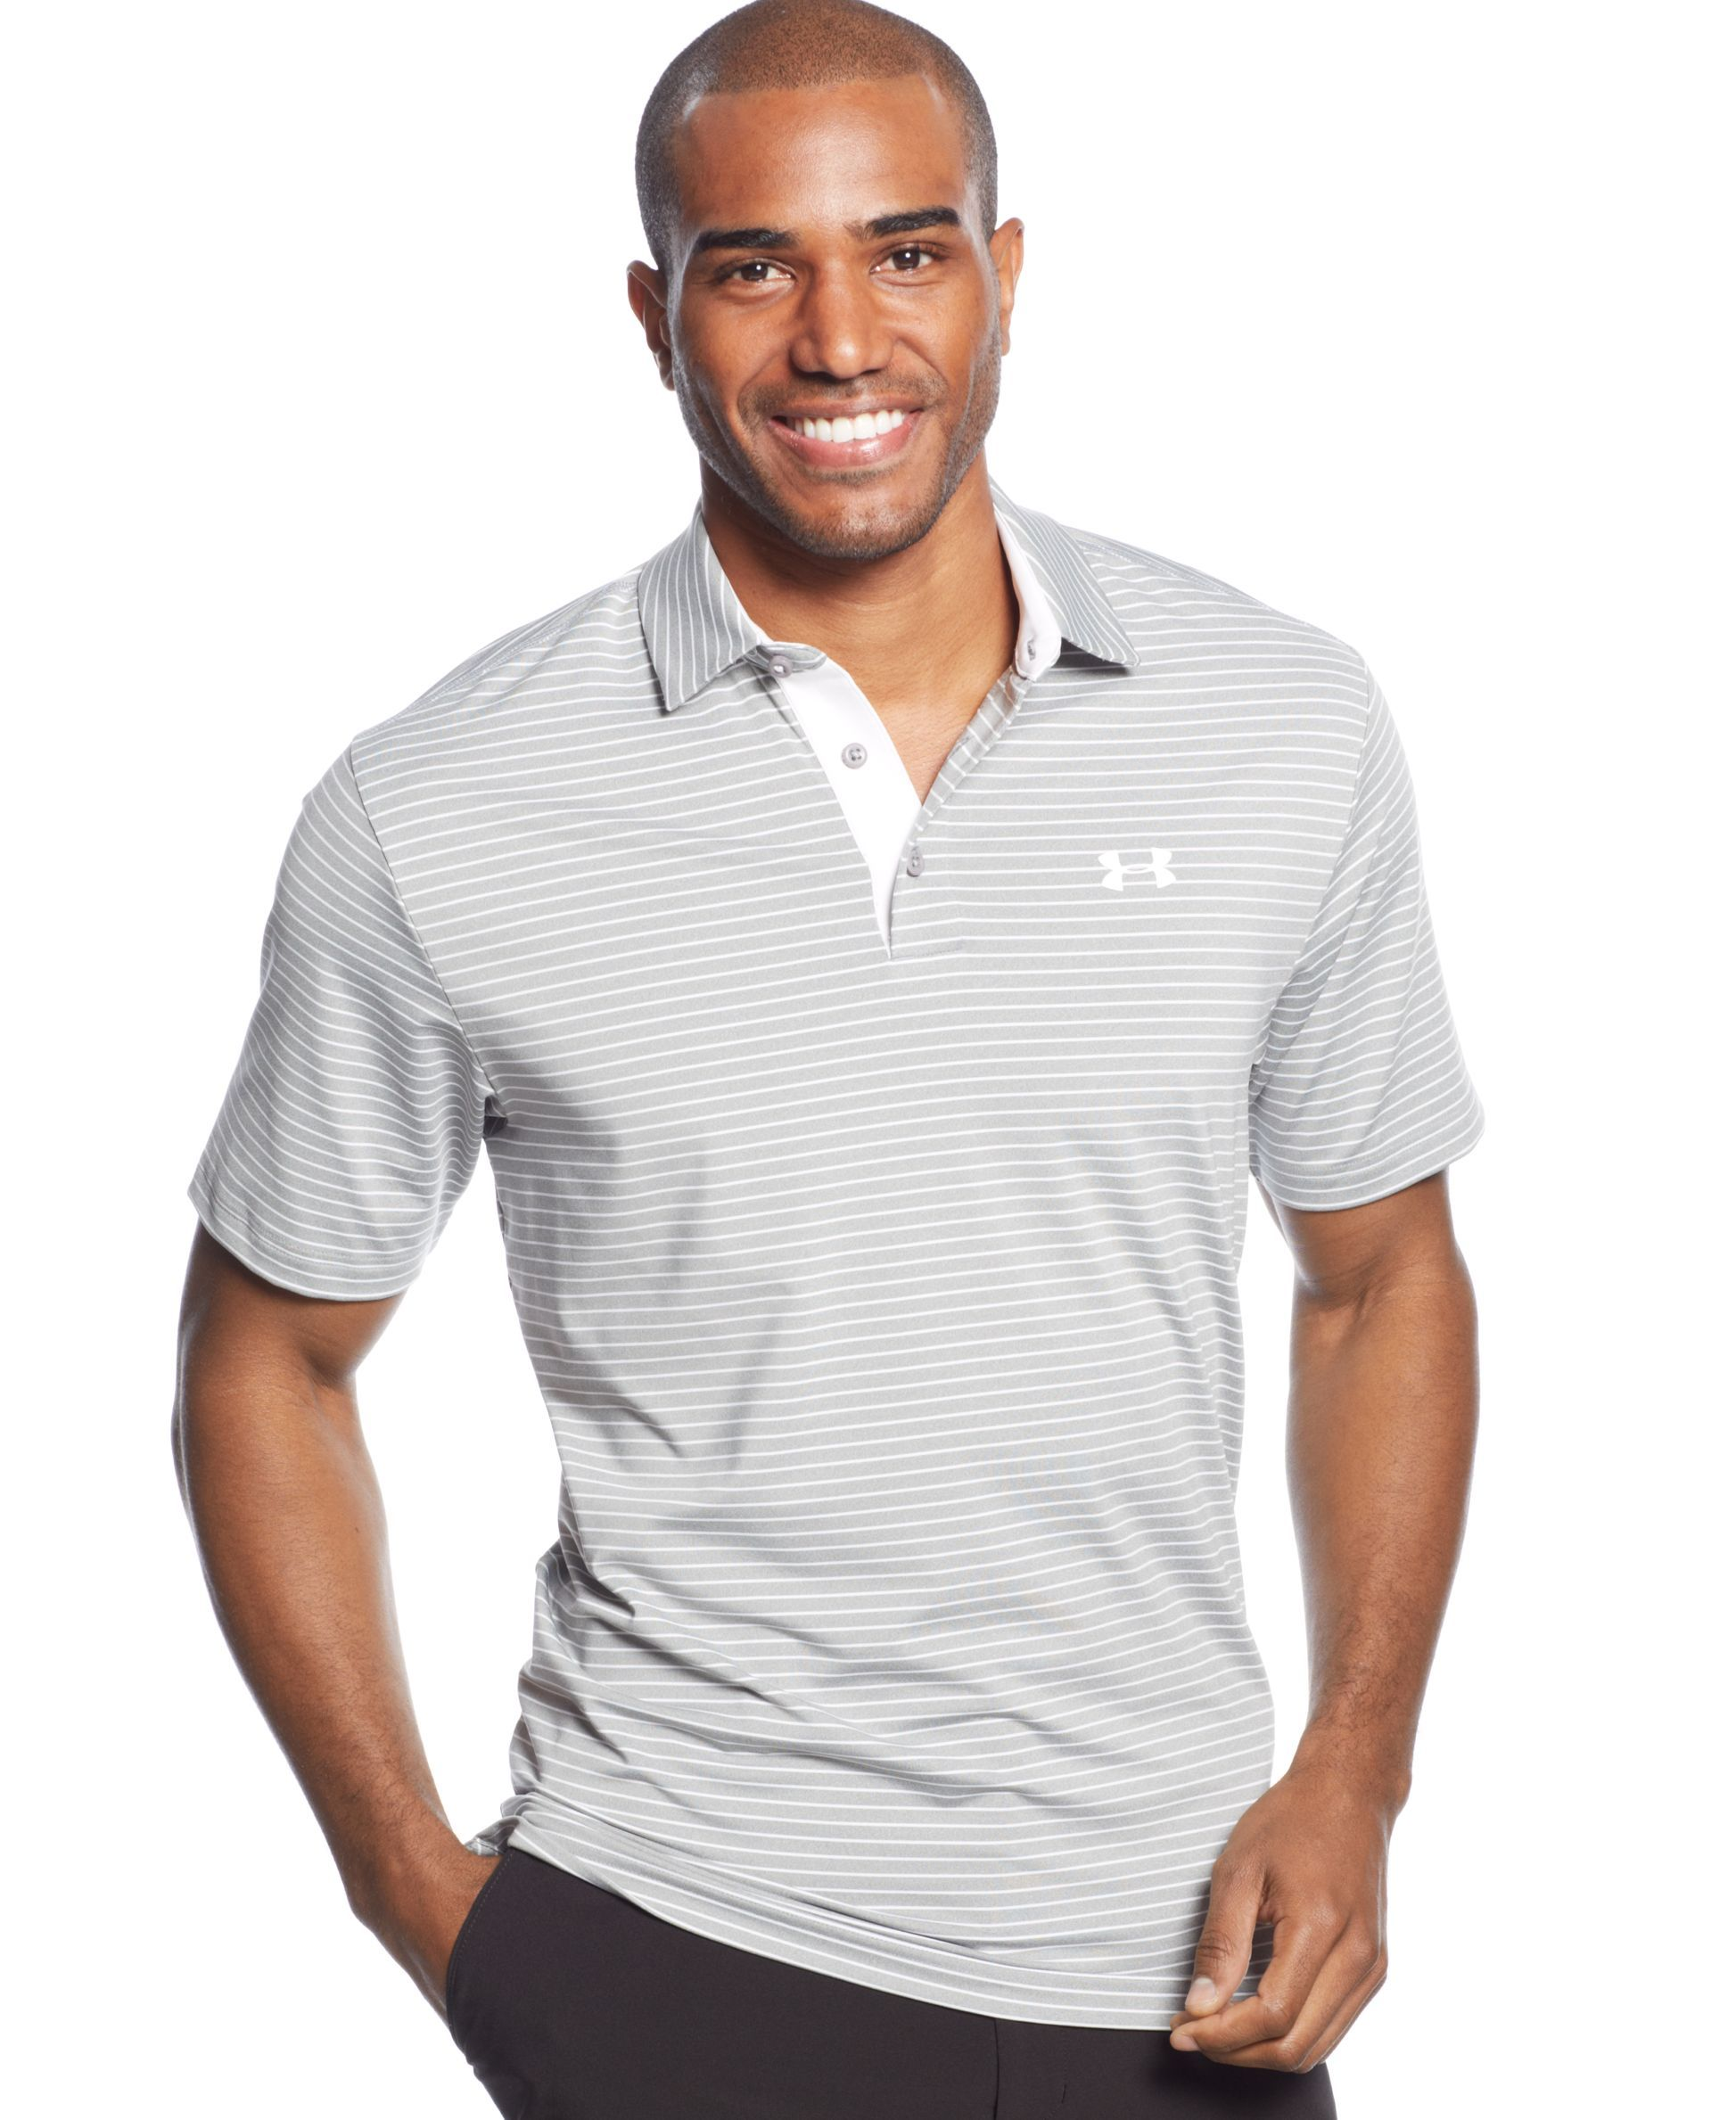 Under Armour Playoff Striped Performance Polo